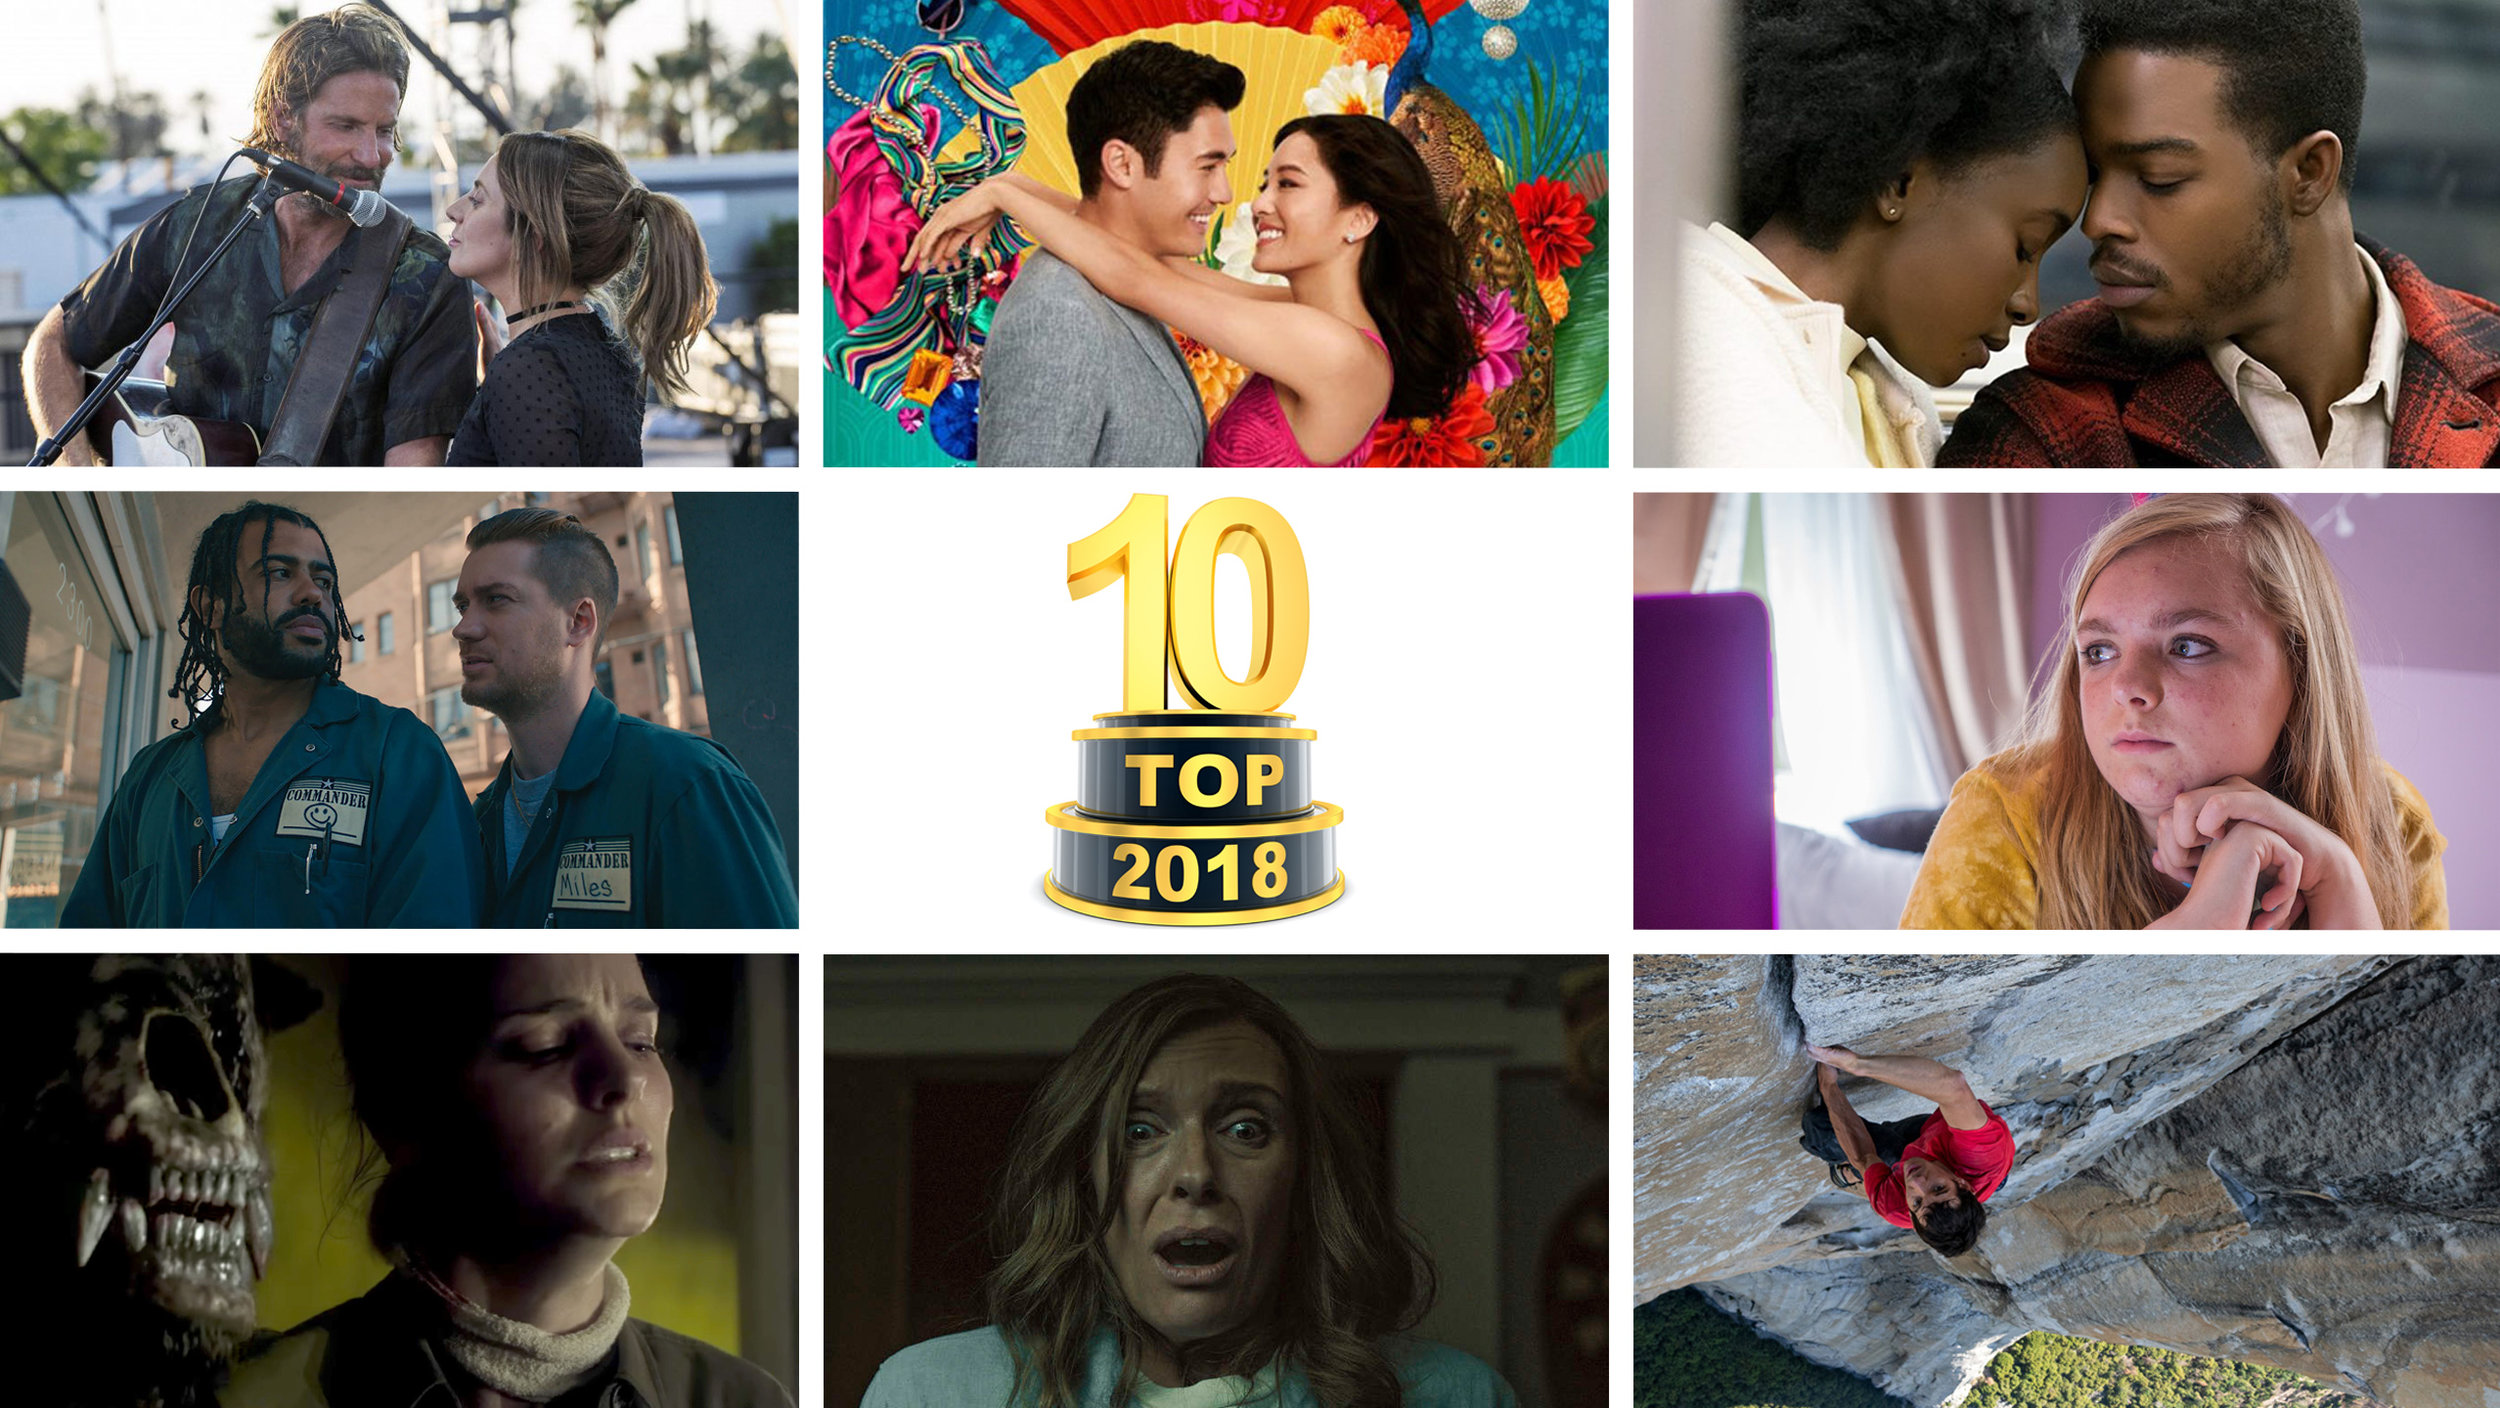 M   BP e307 - Top Ten Films of 2018 (1/9/19)    Here they are! The only movie lists you need this year... Brad, Jim, and Will have each come up with their Top 10 Films of 2018, and we'll be counting them down on this episode.